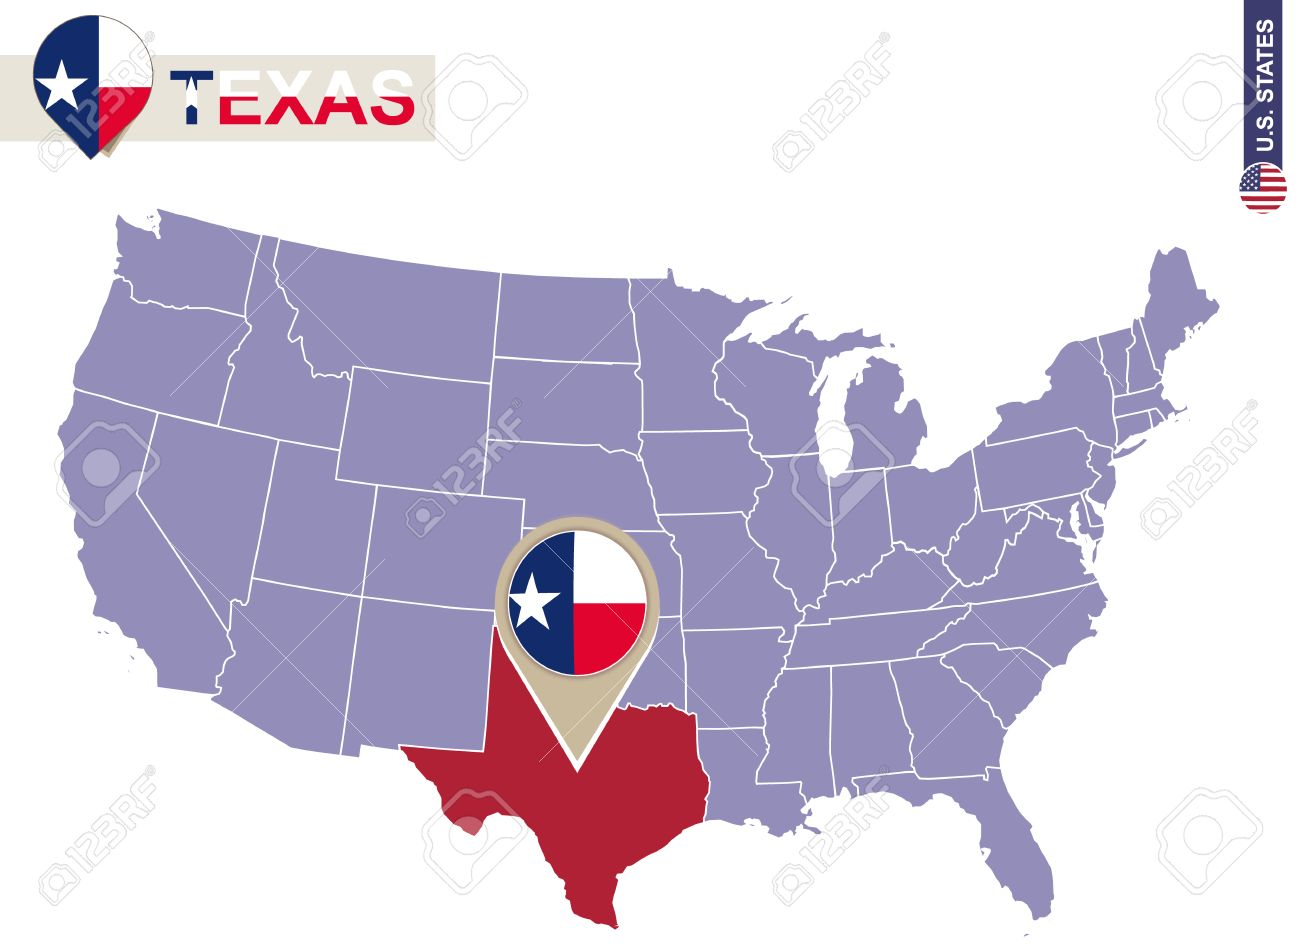 Texas State On USA Map Texas Flag And Map US States Royalty - Texas map of usa